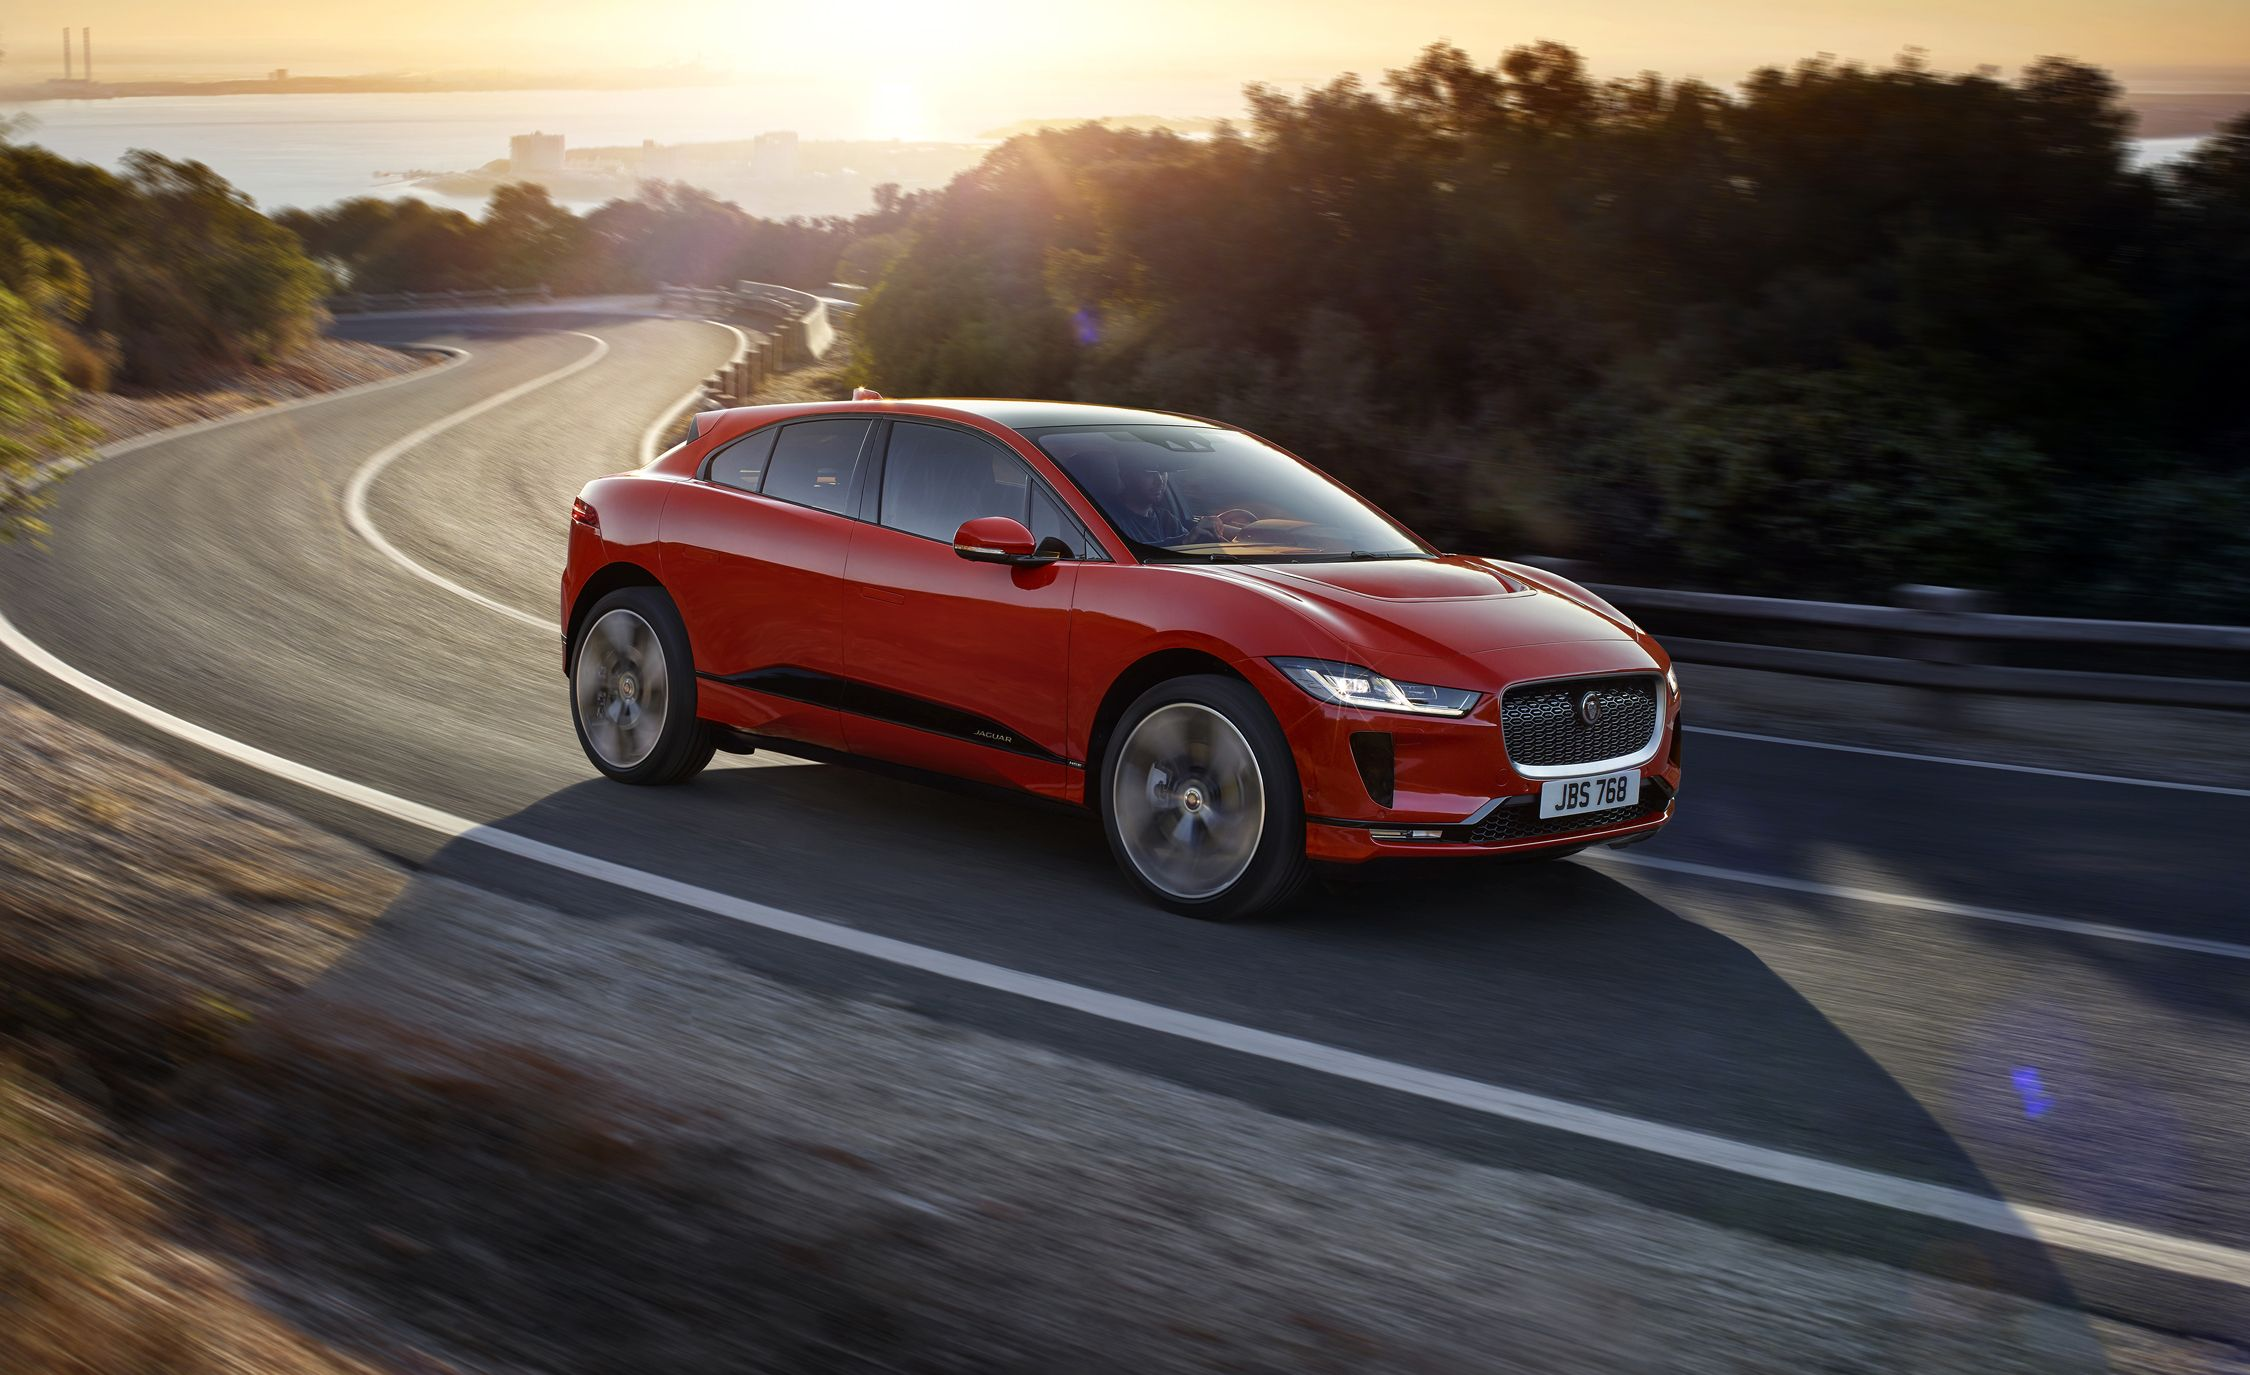 2019 Jaguar I Pace The Electric Jag Is Finally Here